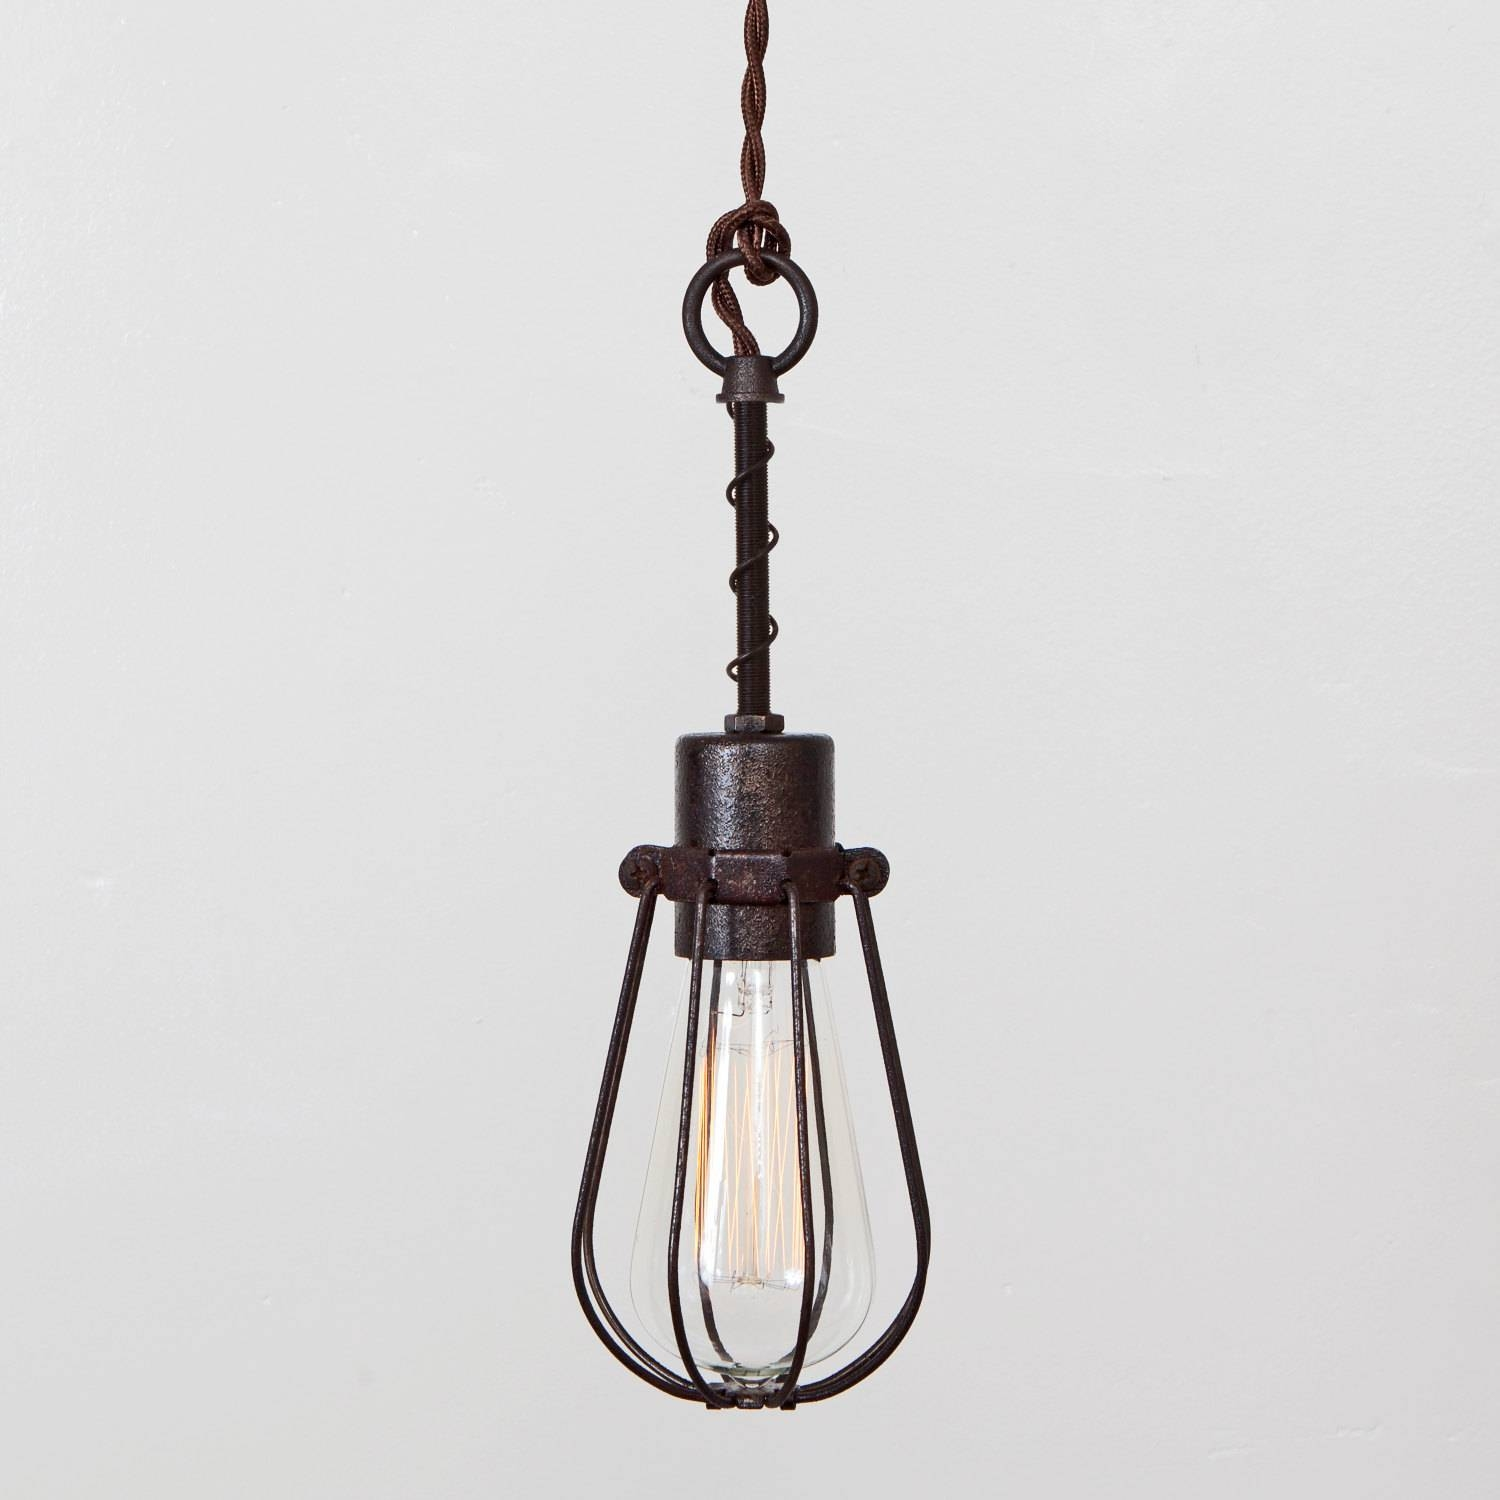 Oval Bulb Cage Light Pendant Light Industrial Hanging Light throughout Plugin Ceiling Pendant Lights (Image 9 of 15)